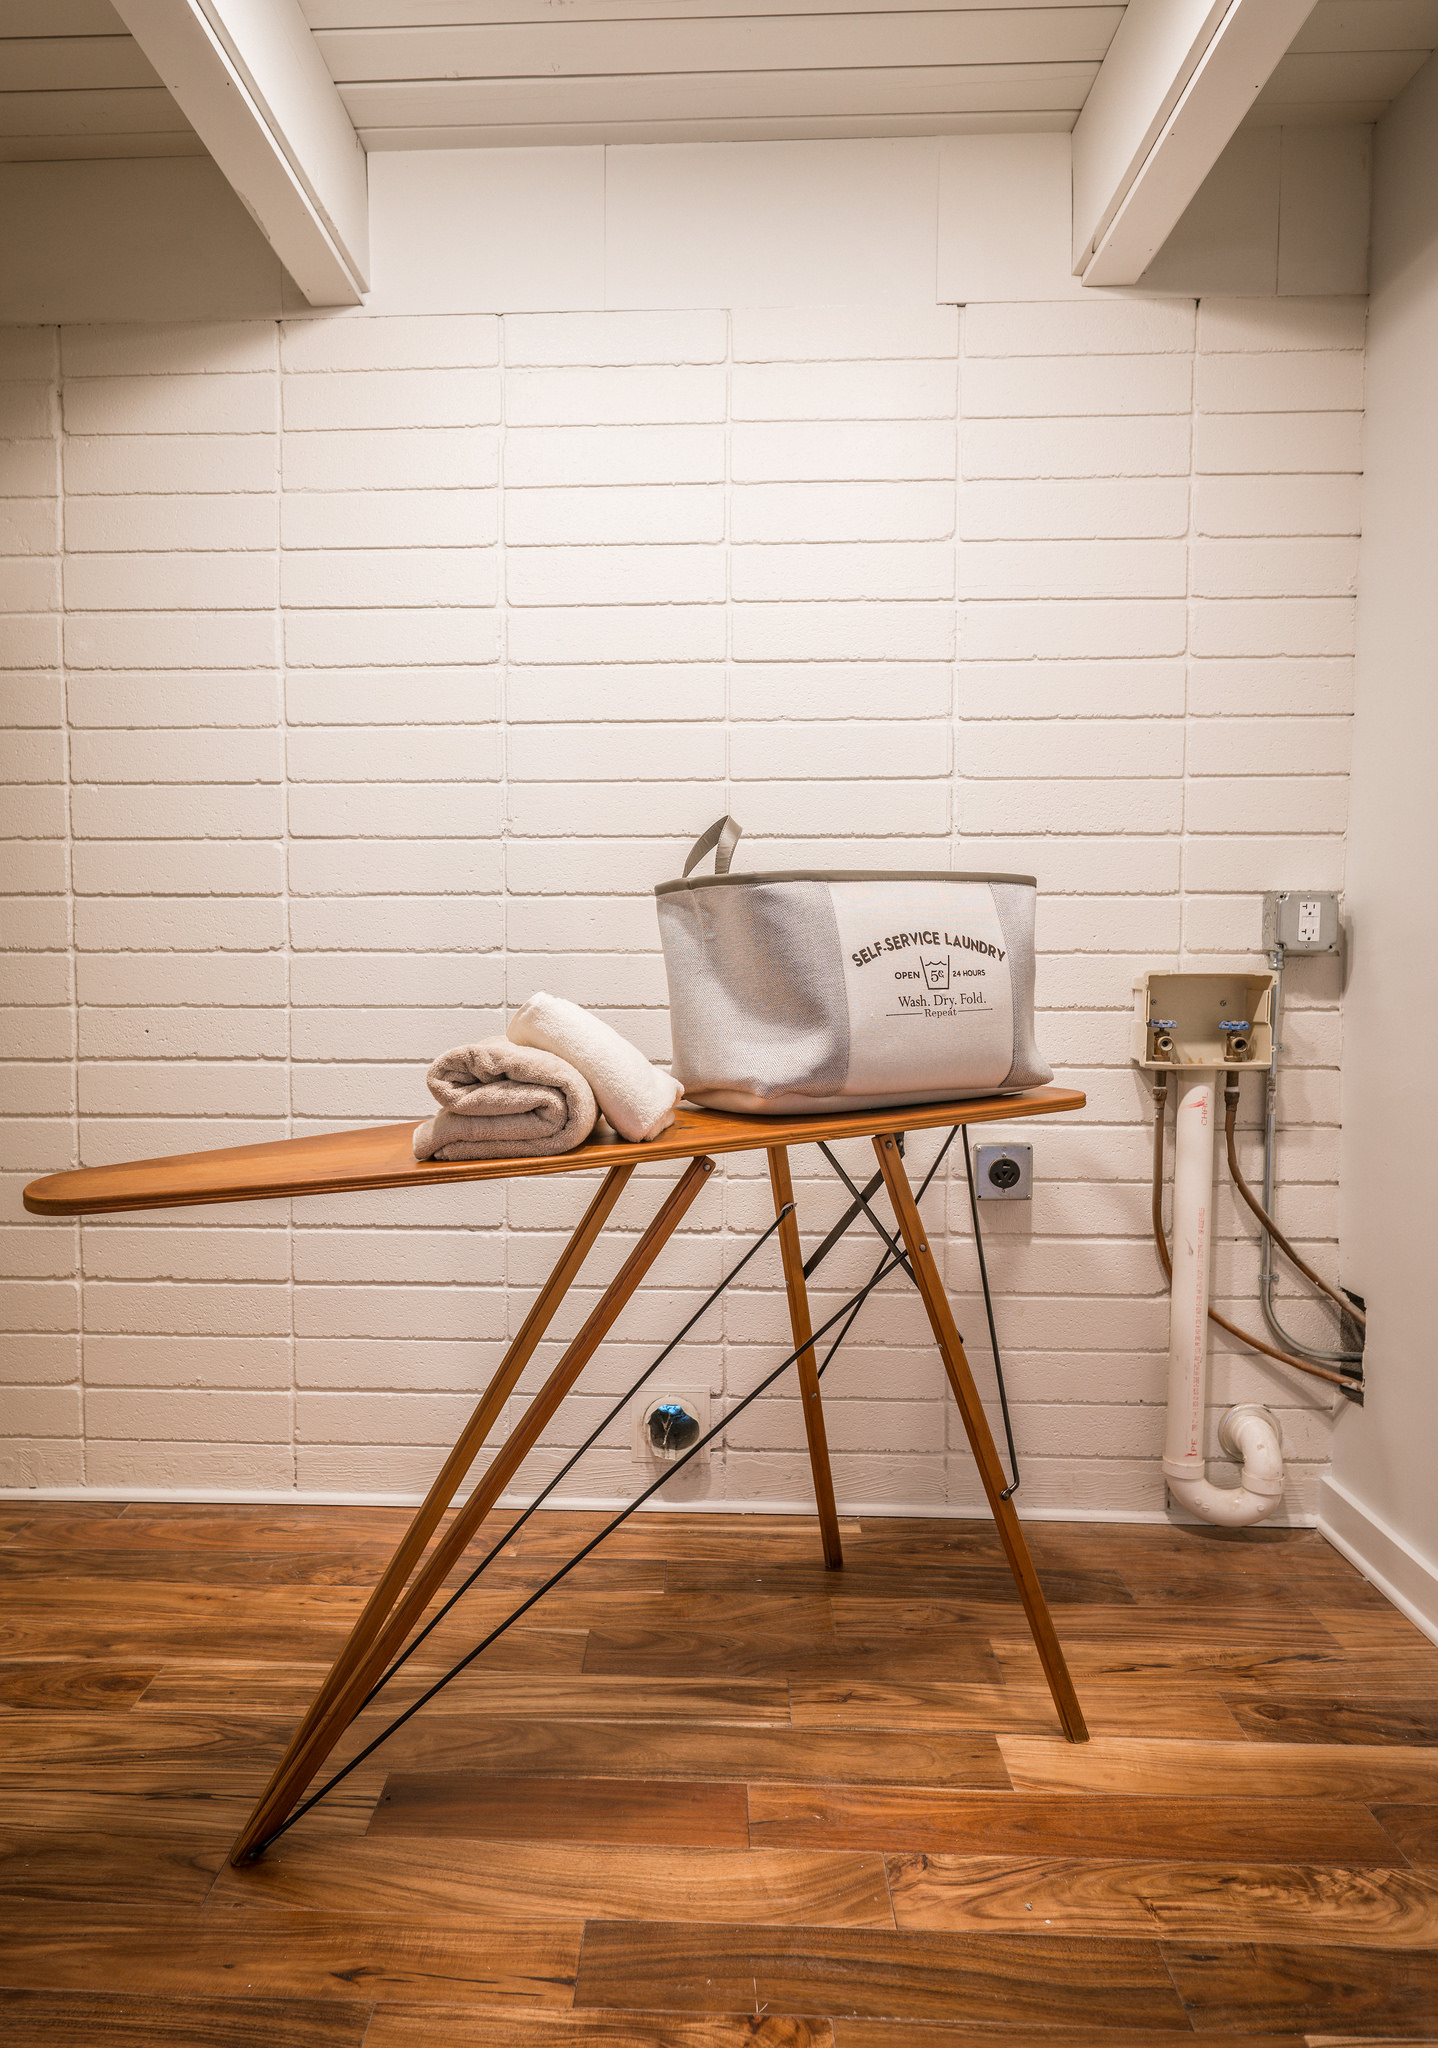 Second laundry in kids' playroom